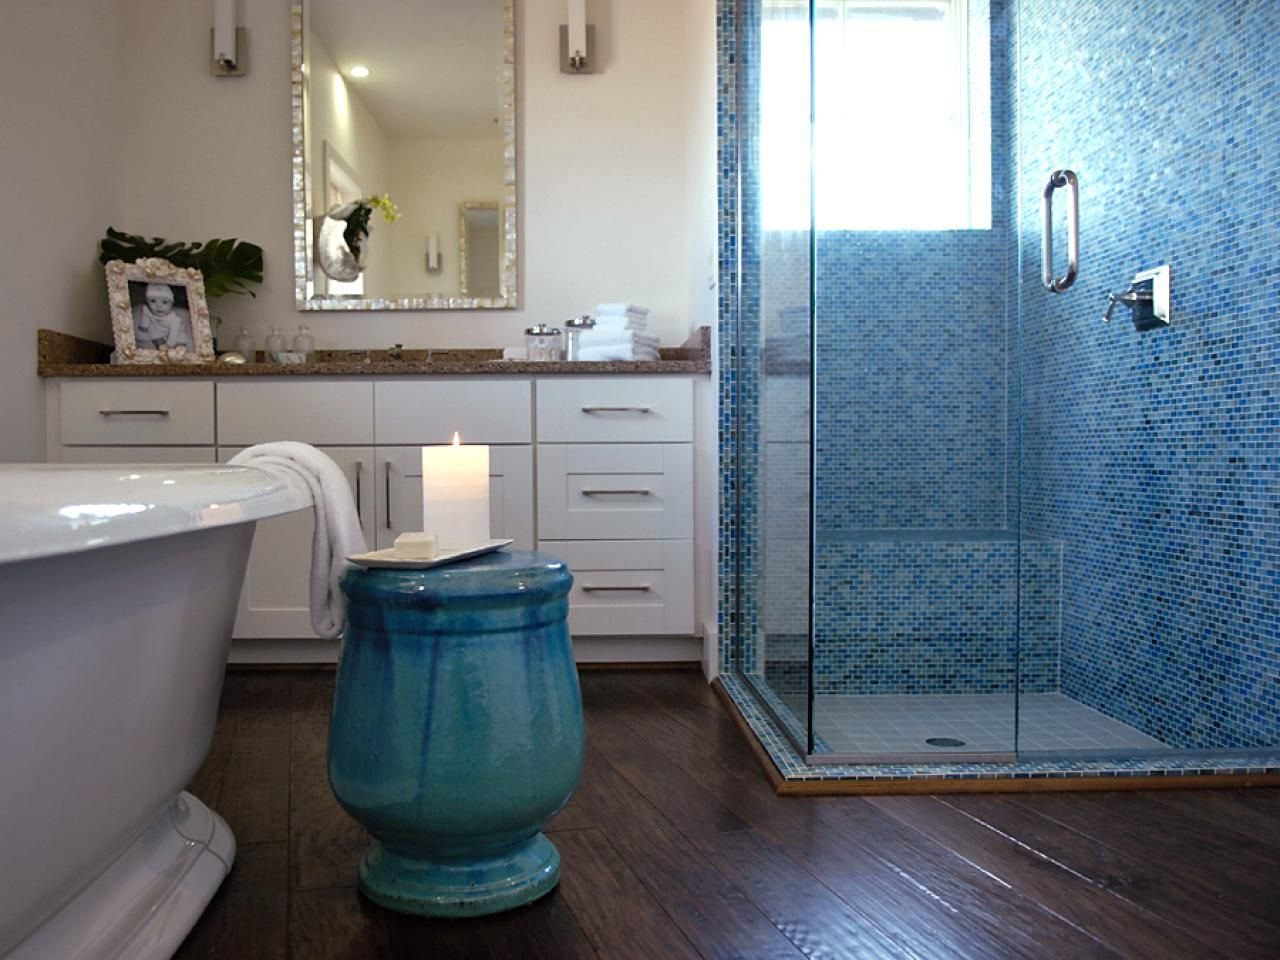 Master Bathroom From HGTV Green Home 2009 | Master bathrooms, Hgtv ...